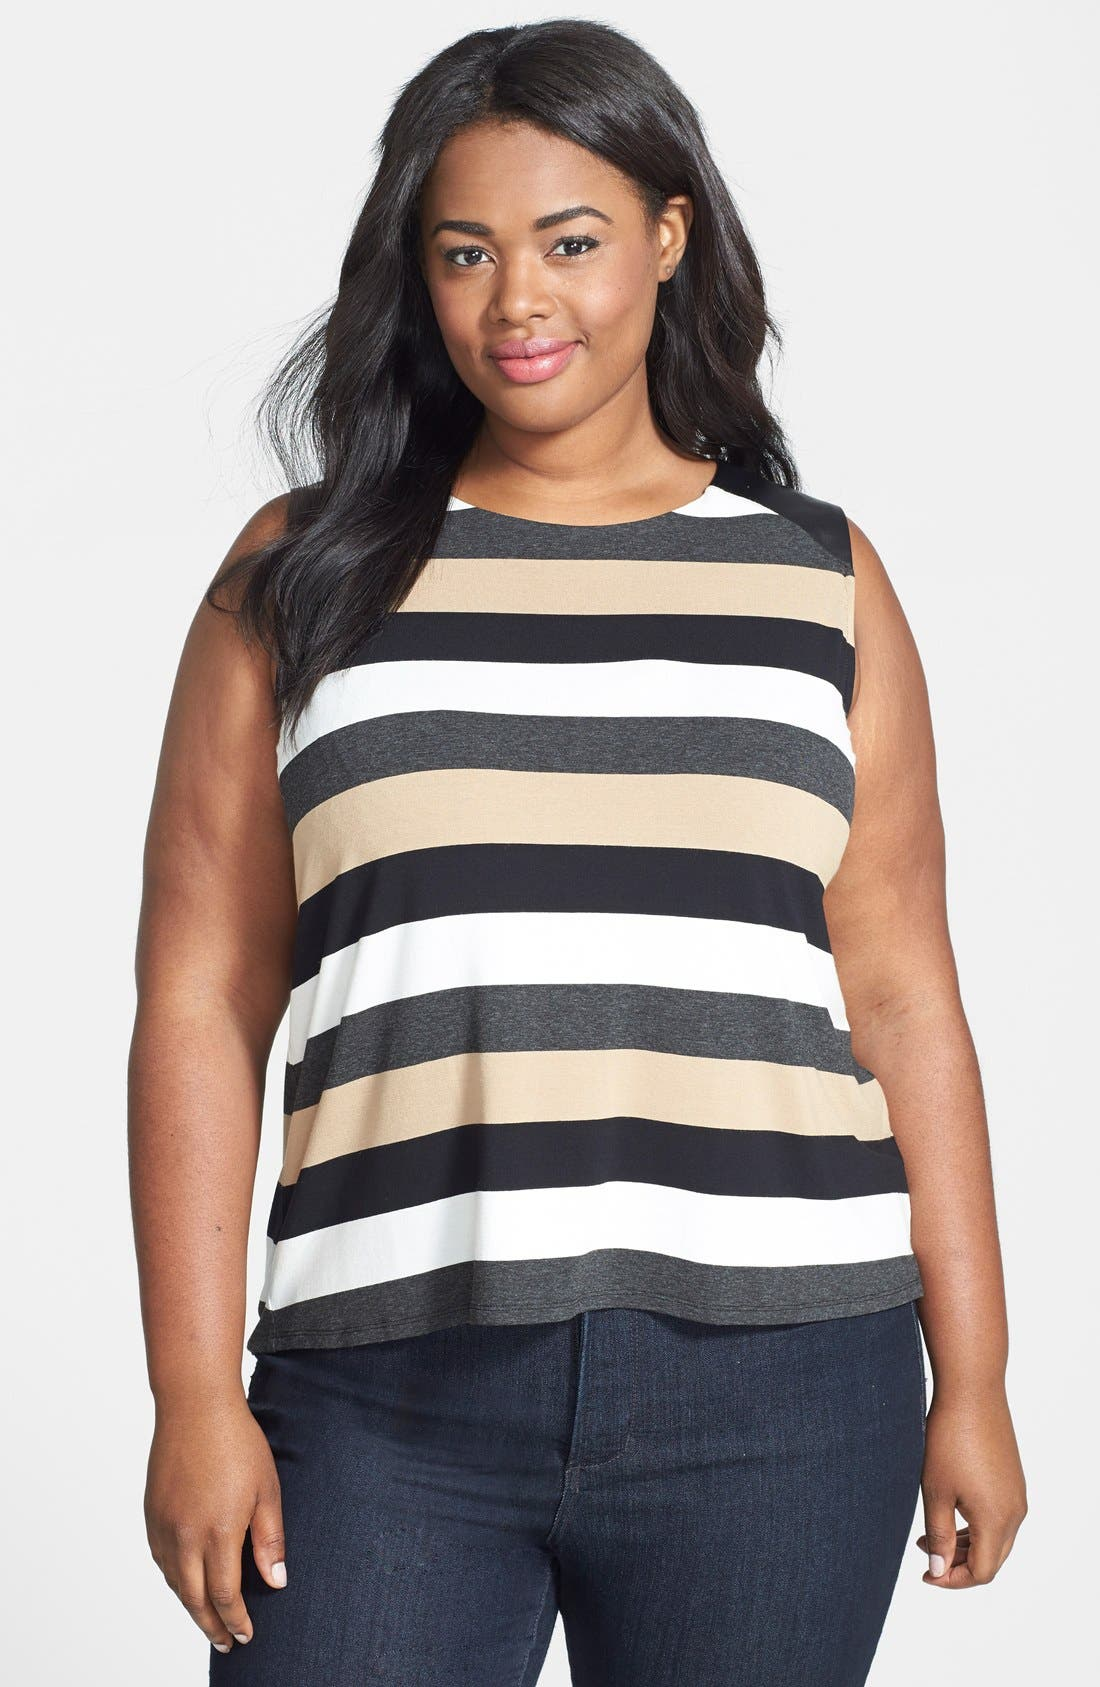 Alternate Image 1 Selected - Vince Camuto Faux Leather Trim Stripe Sleeveless Top